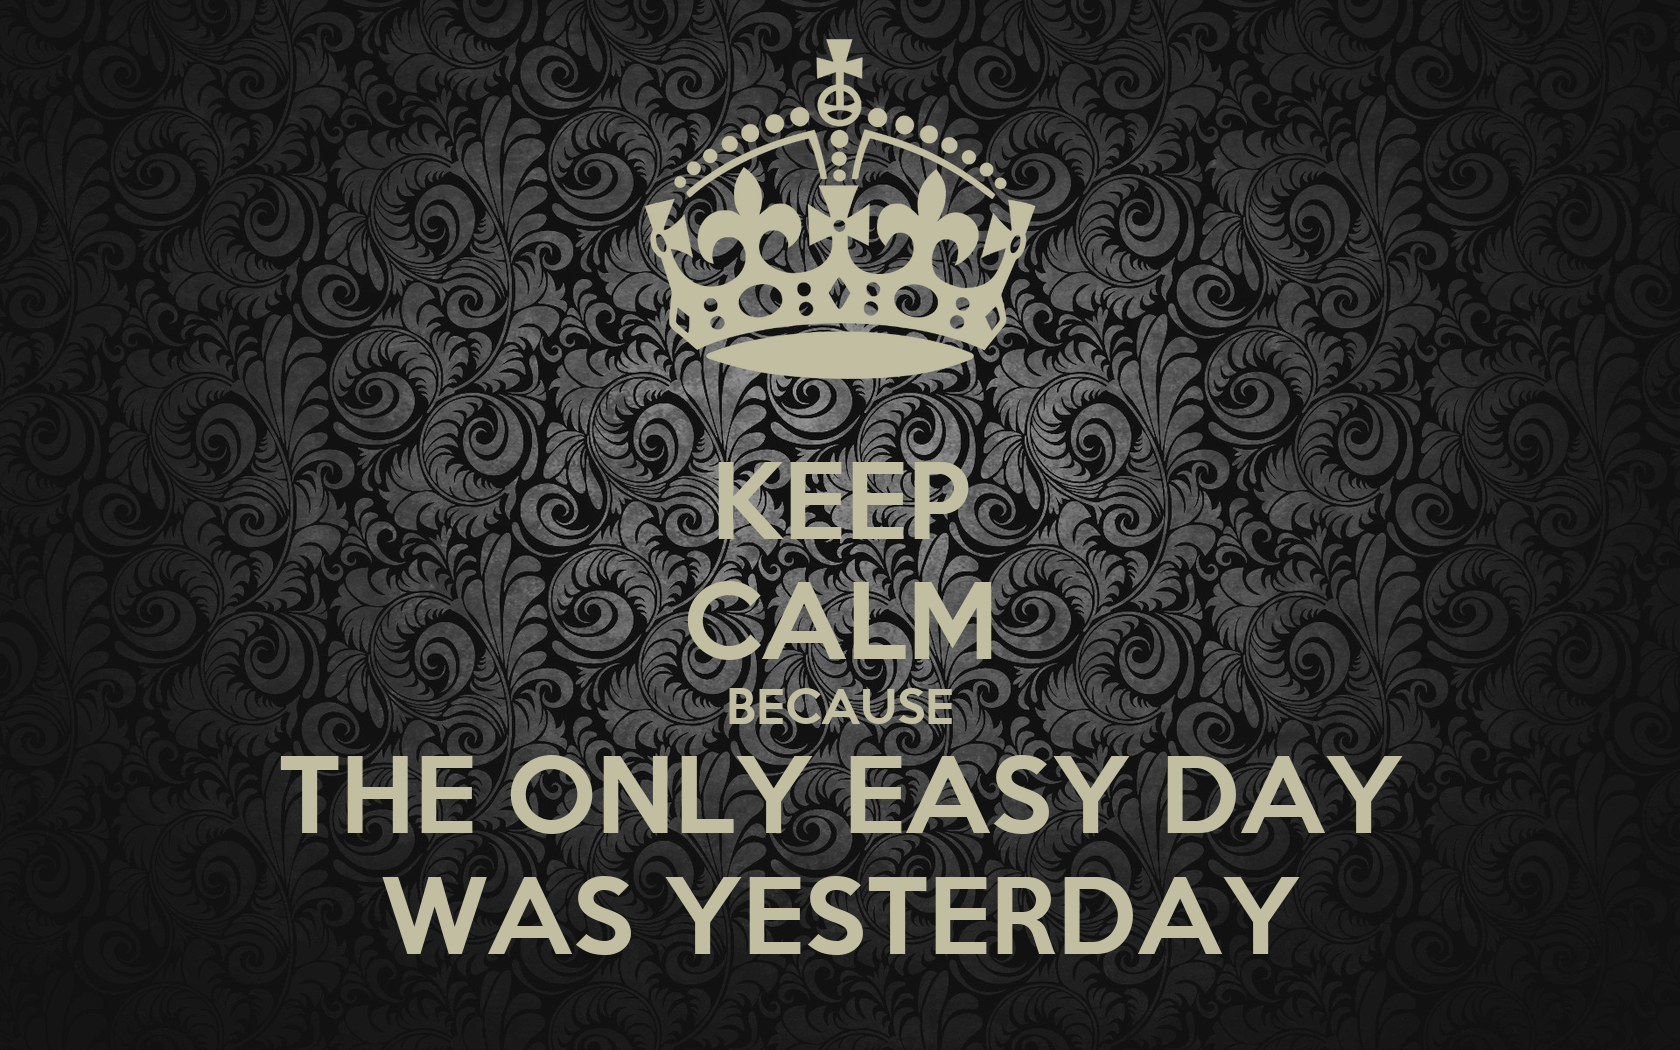 KEEP CALM BECAUSE THE ONLY EASY DAY WAS YESTERDAY Poster ...